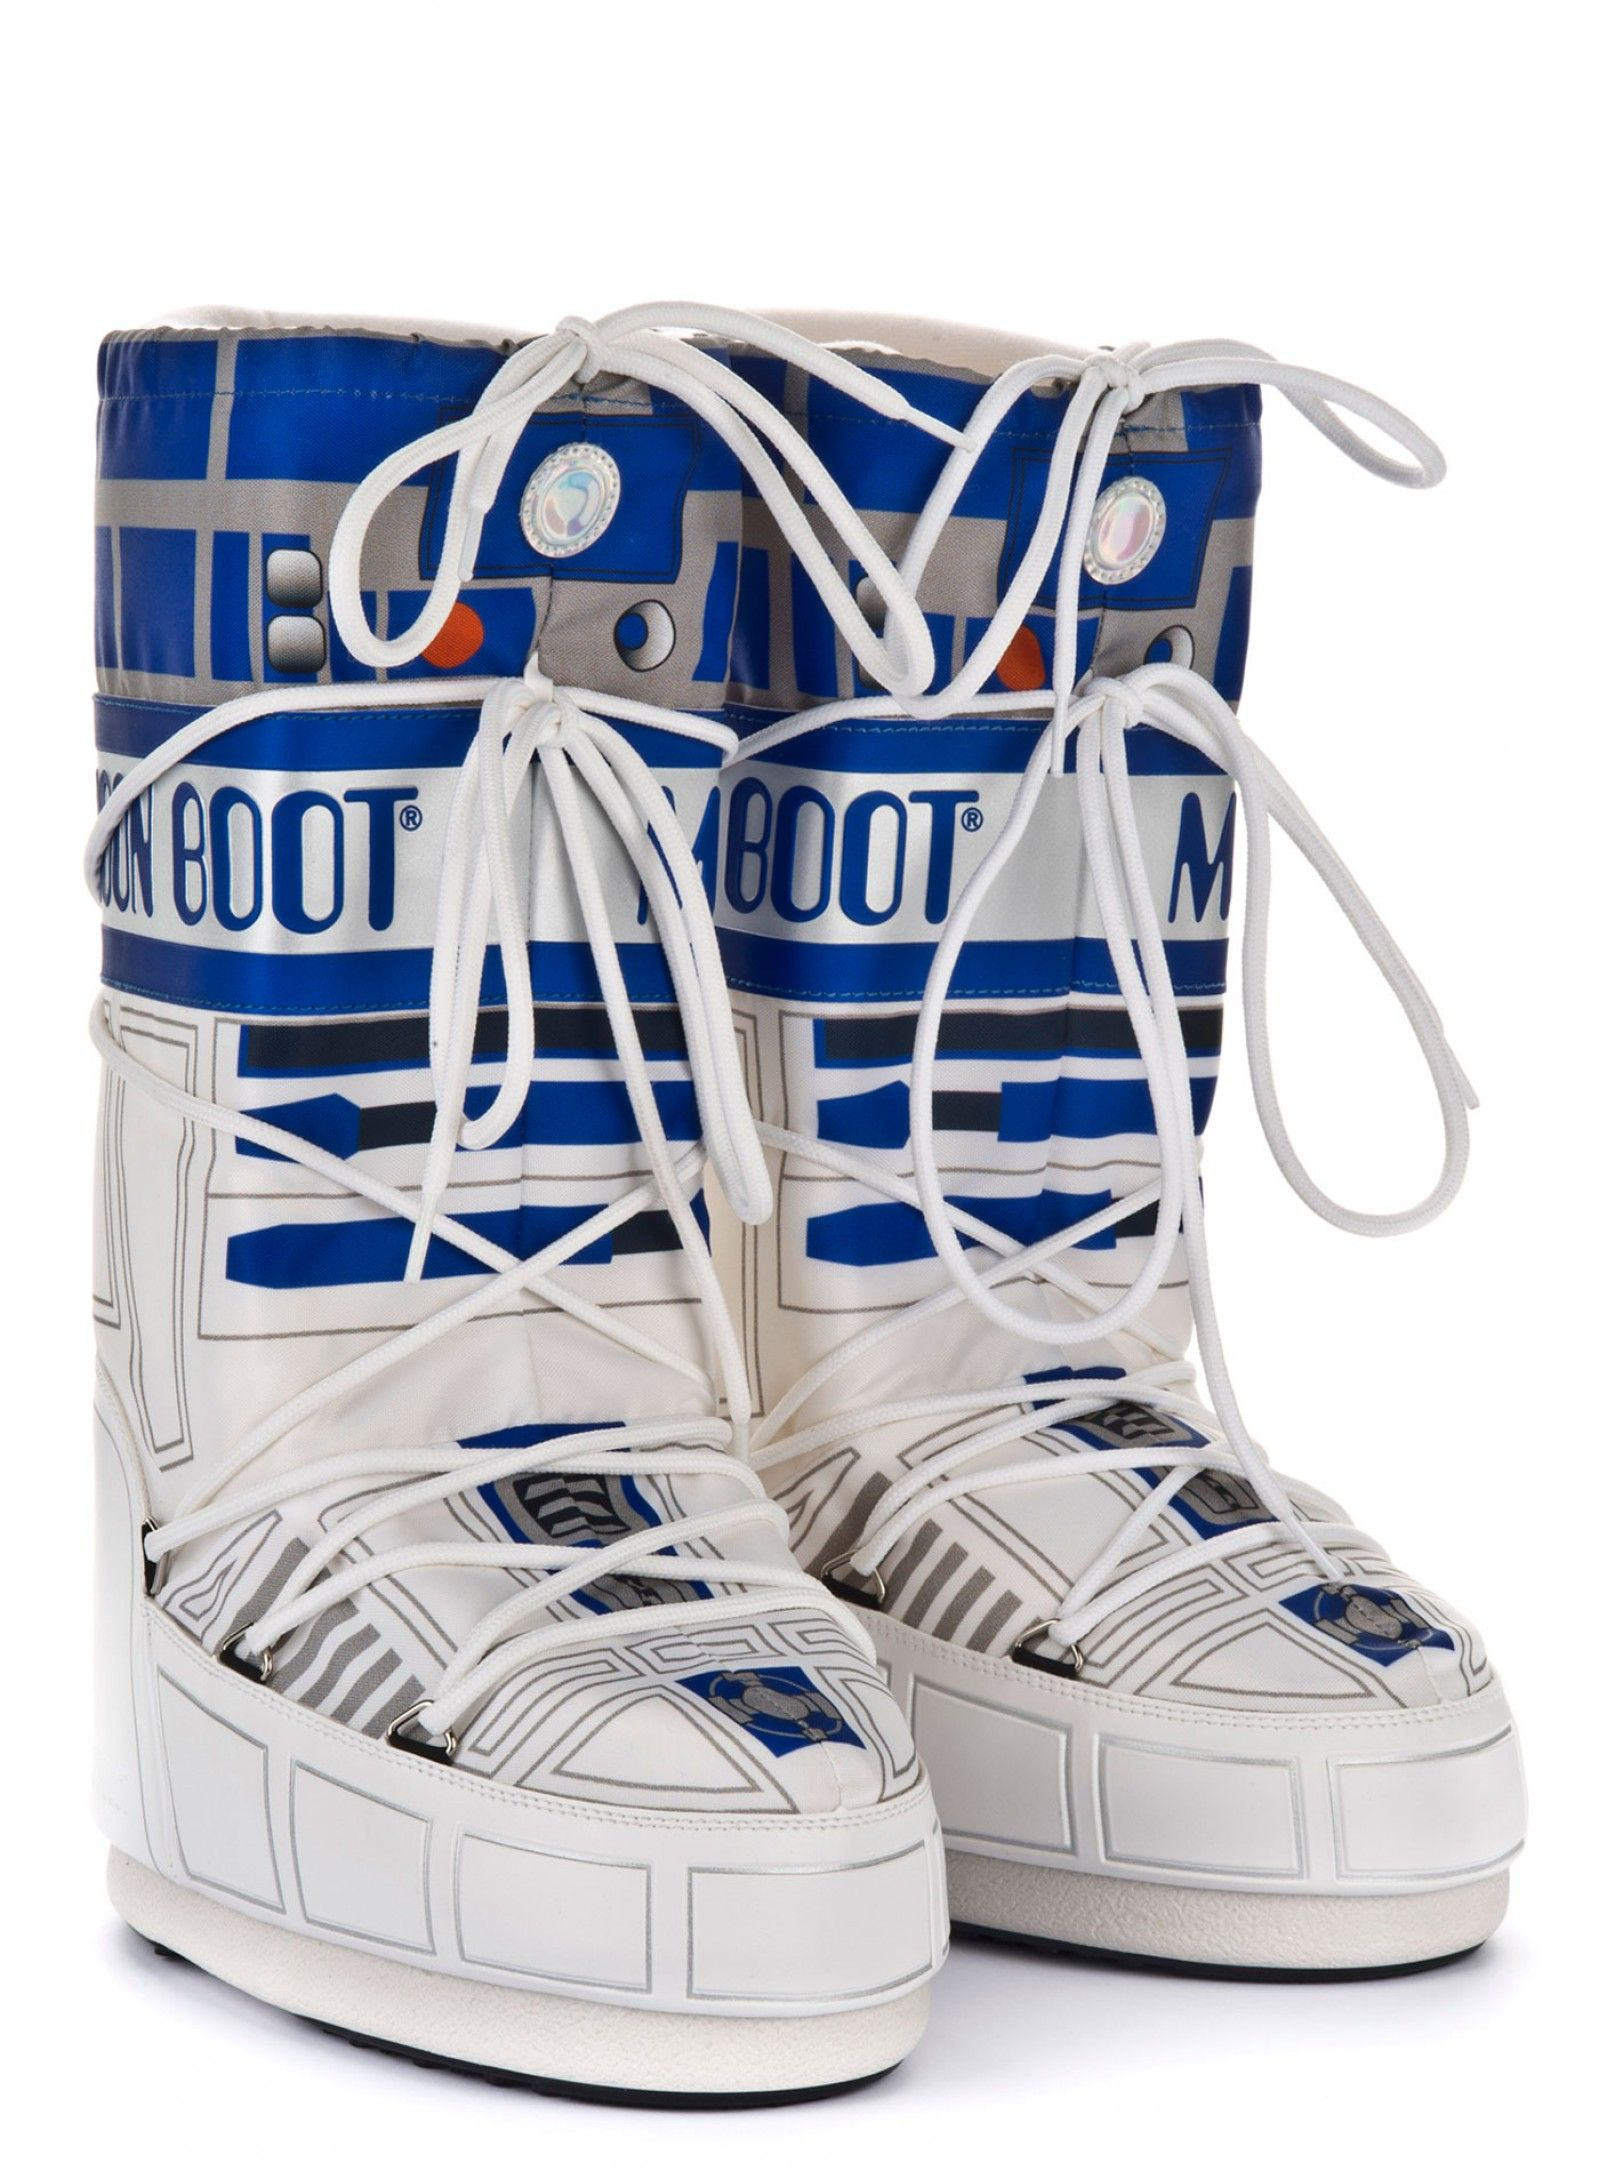 896f5bcfe58 Moon Boot® - MOON BOOT ICON LIMITED EDITION STAR WARS R2-D2 - en ...